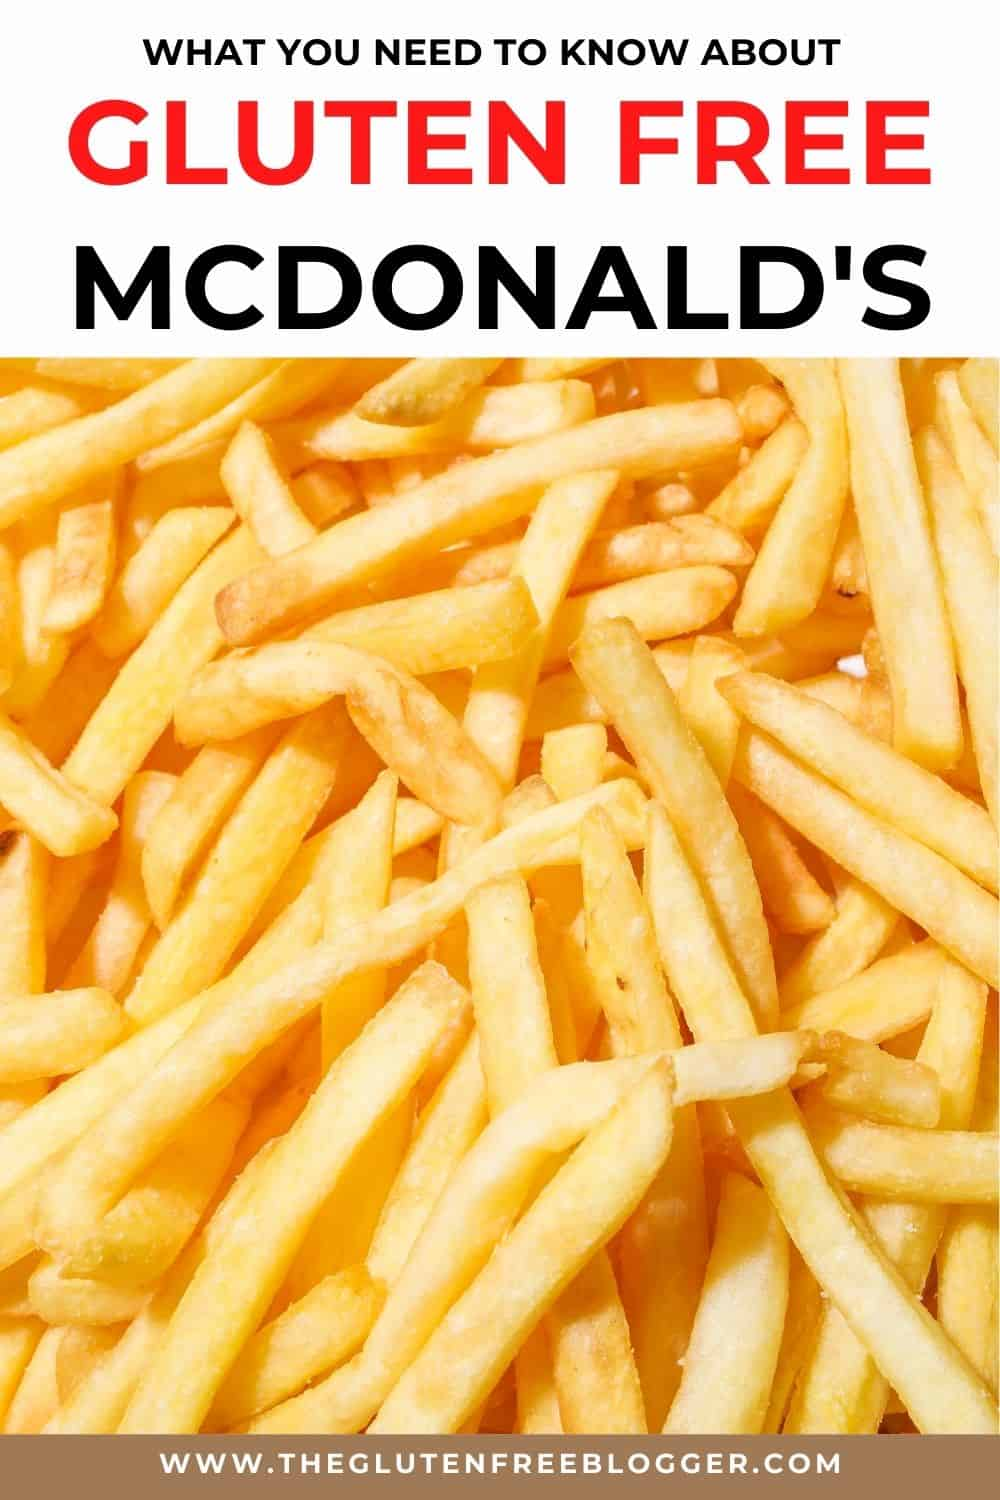 Gluten free McDonald's guide - UK (Updated 2020)